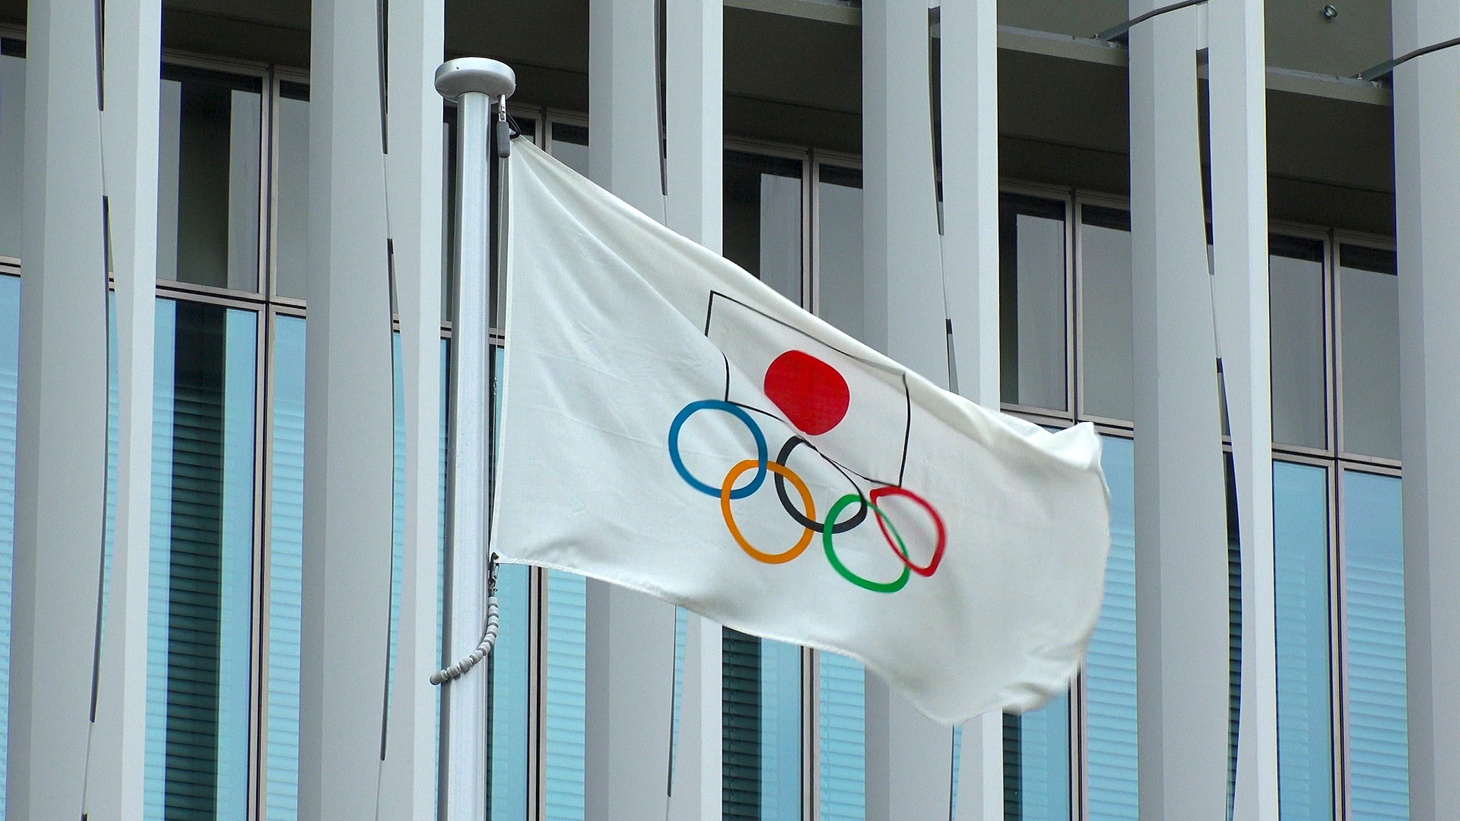 The Olympics start in two weeks, but because of a new state of emergency in Tokyo, there won't be any fans watching the Games in-person.